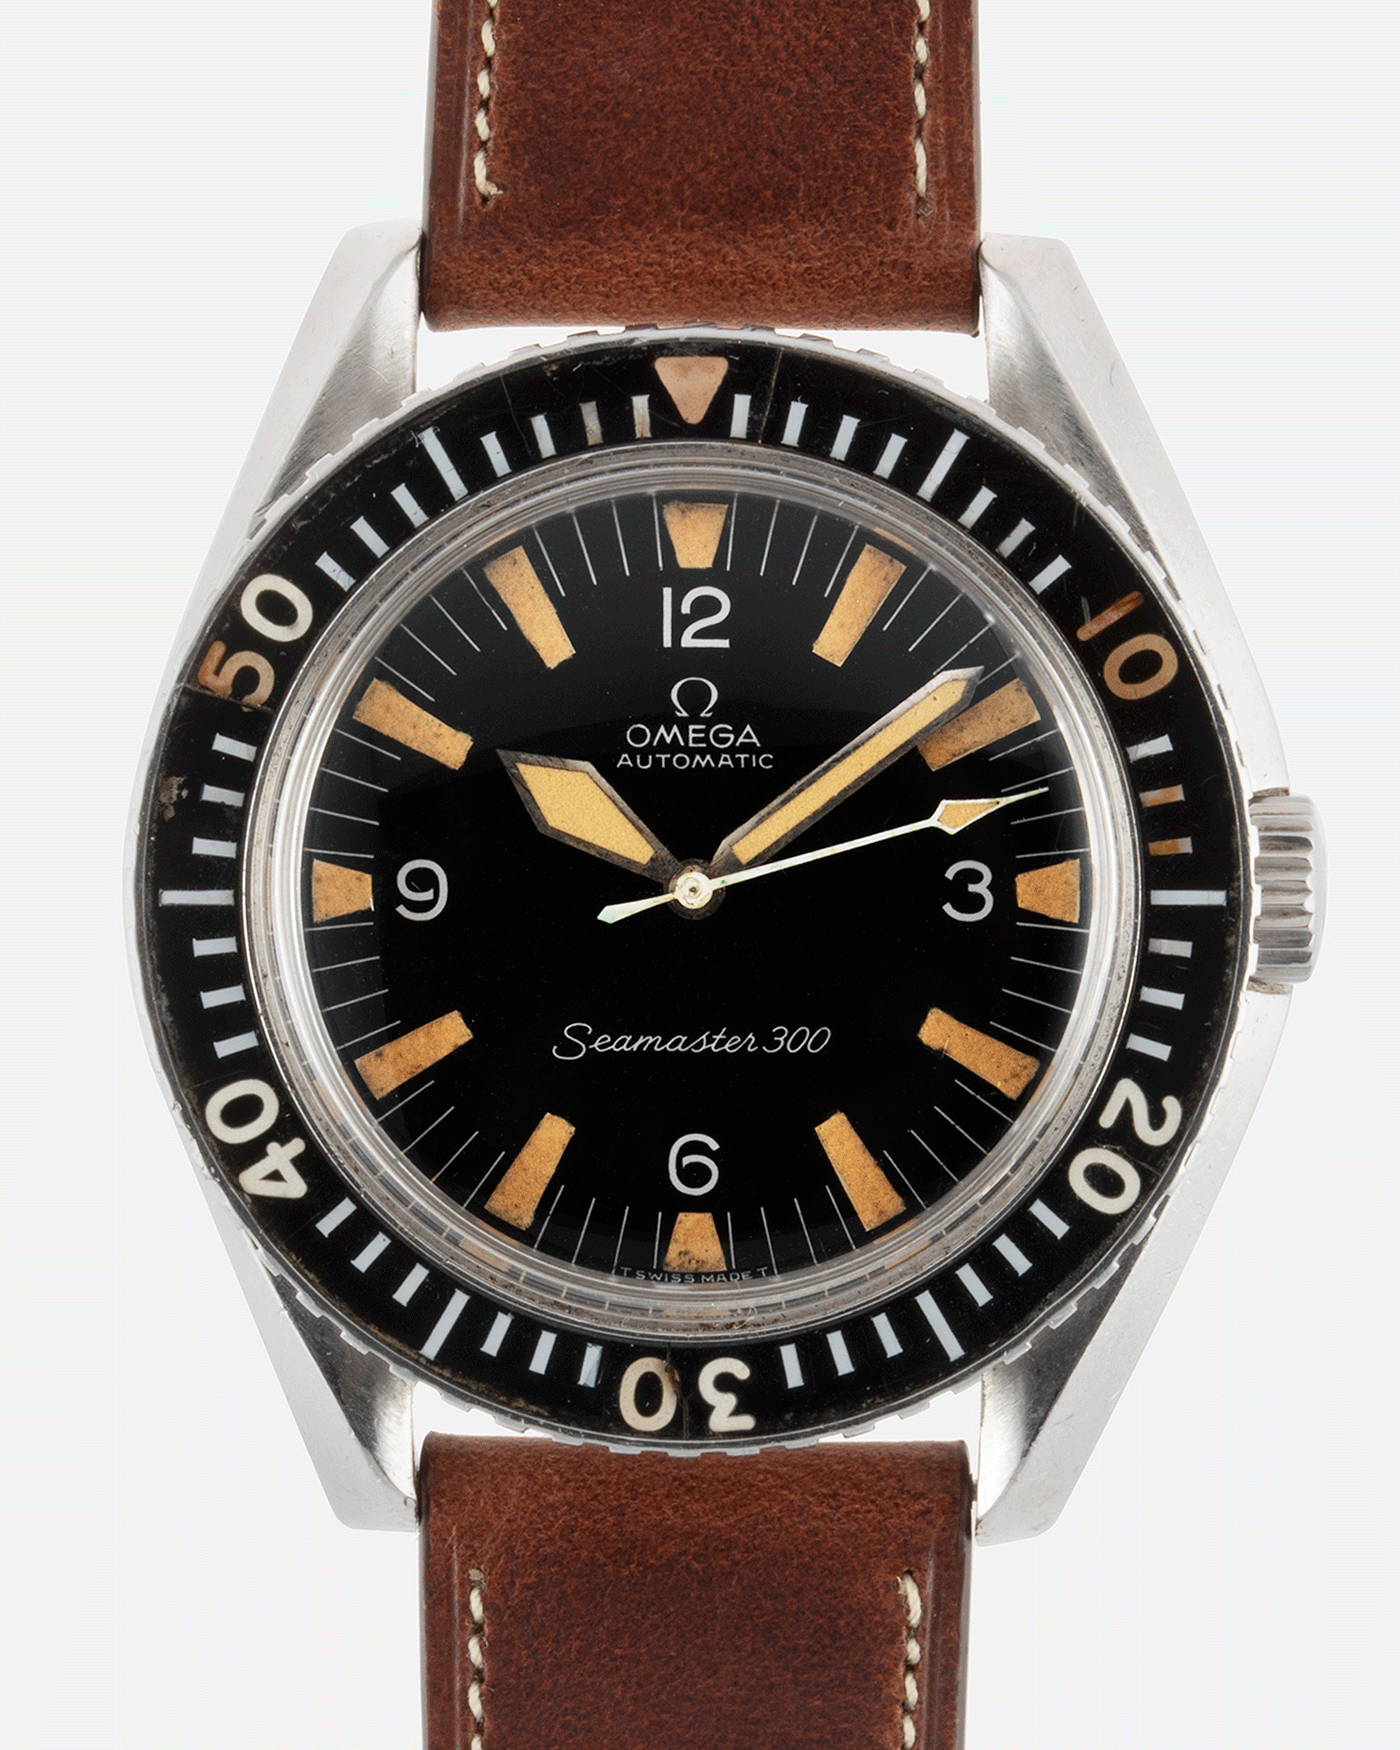 Omega Seamaster 300 165.024 Vintage Dive Watch | S.Song Vintage Watches For Sale